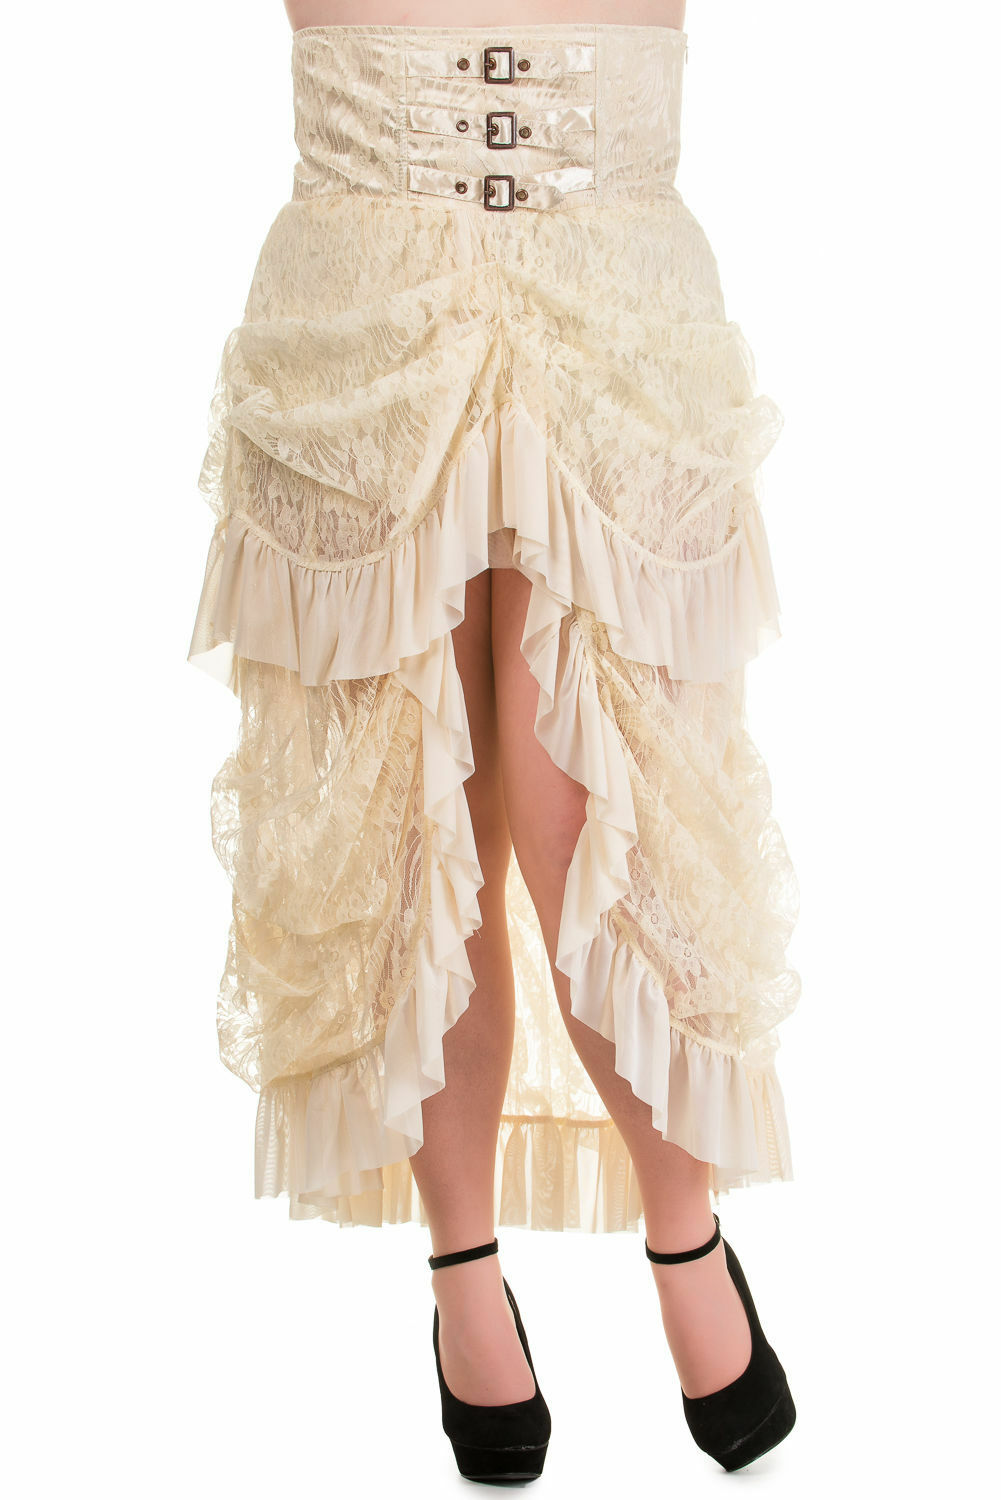 BANNED Cream Steampunk Long GOTH LACE SKIRT Vampire Victorian